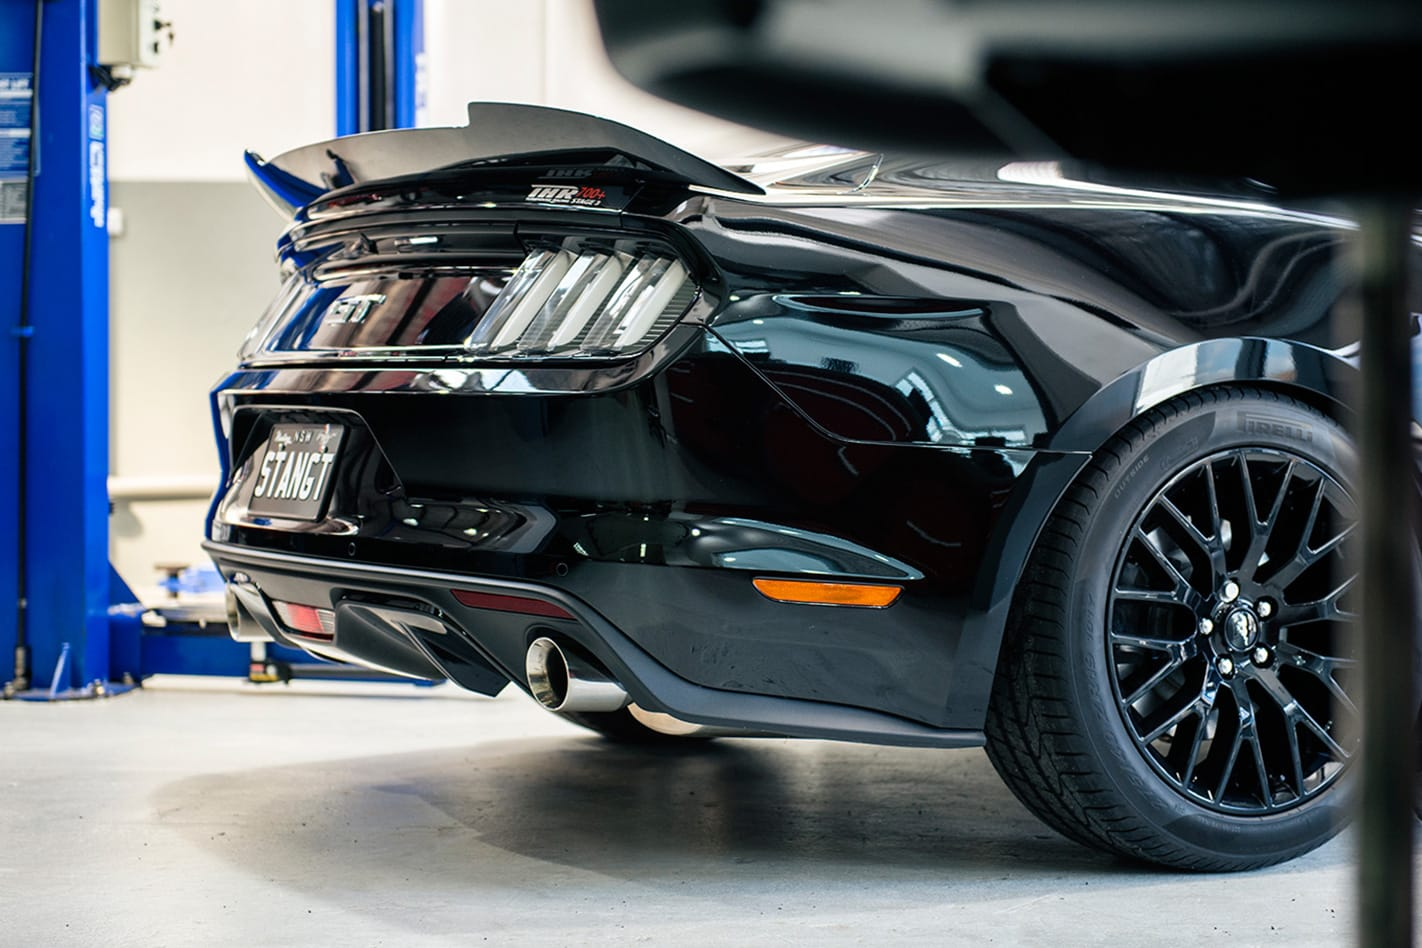 Tunehouse-Ford-Mustang-GT-tail.jpg